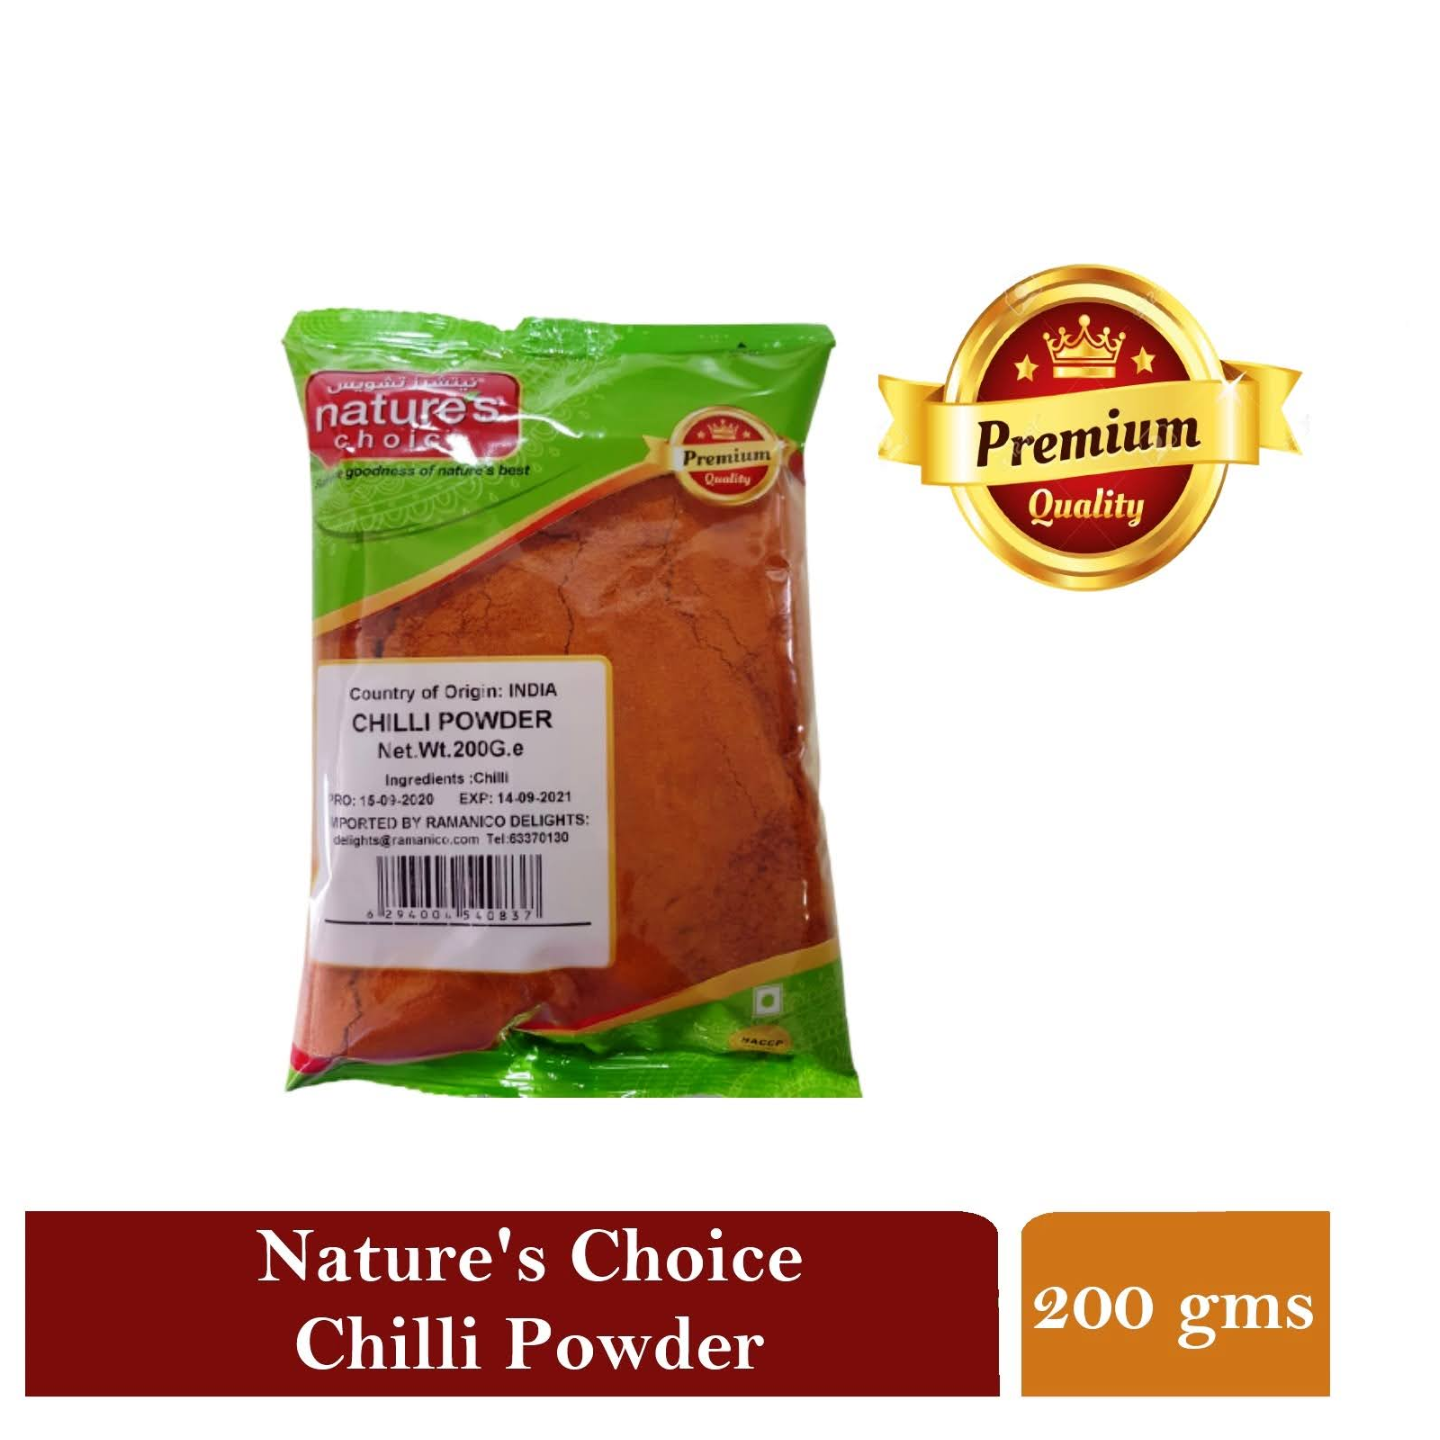 NATURE'S CHOICE PREMIUM QUALITY CHILI POWDER 200G